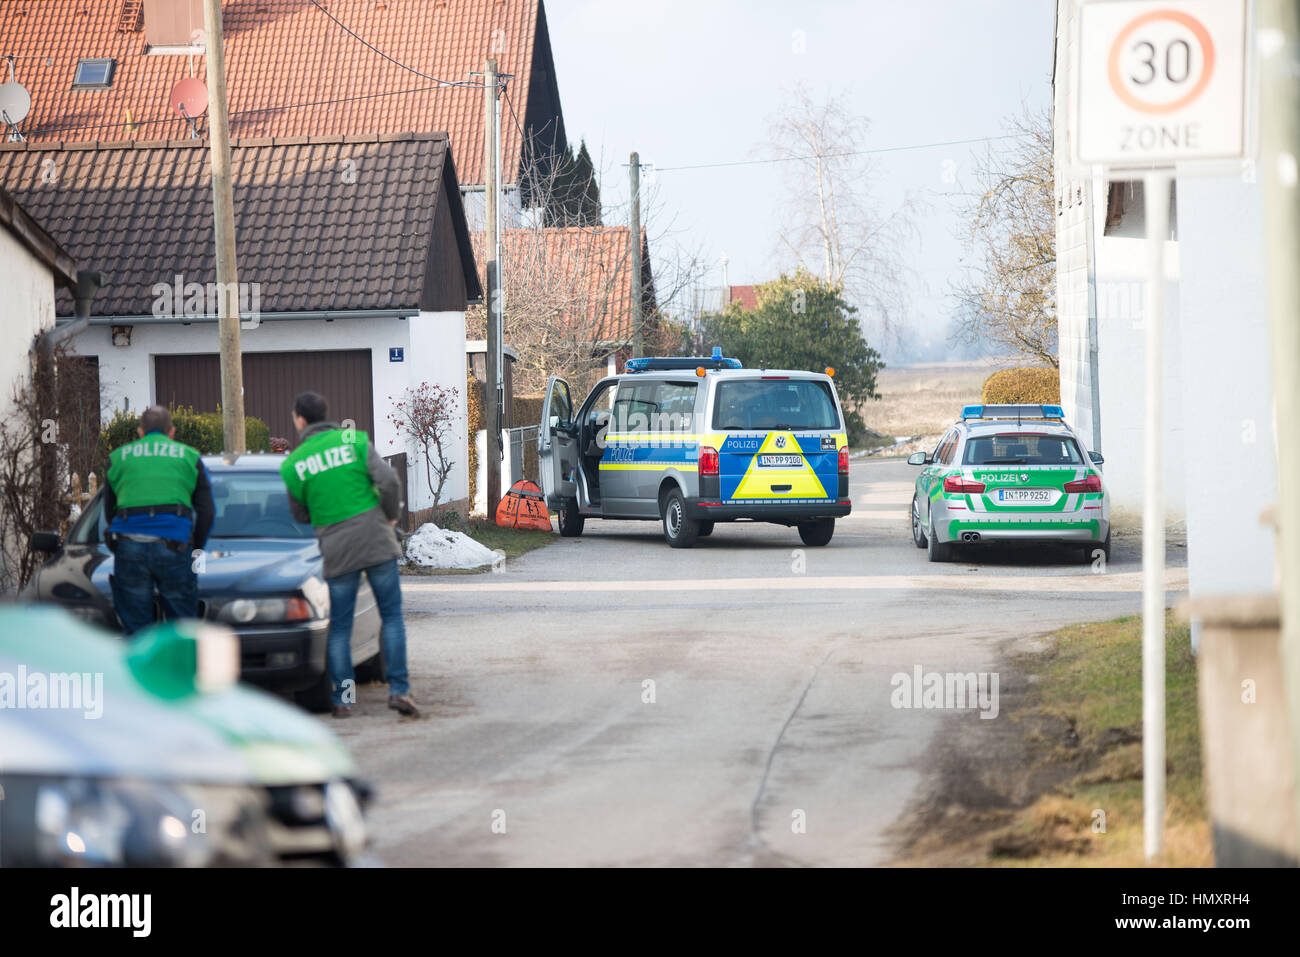 February 7, 2017 - 8am Landsham near Munich- Approximately 30 heavily-armed police in Germany initiated another - Stock Image